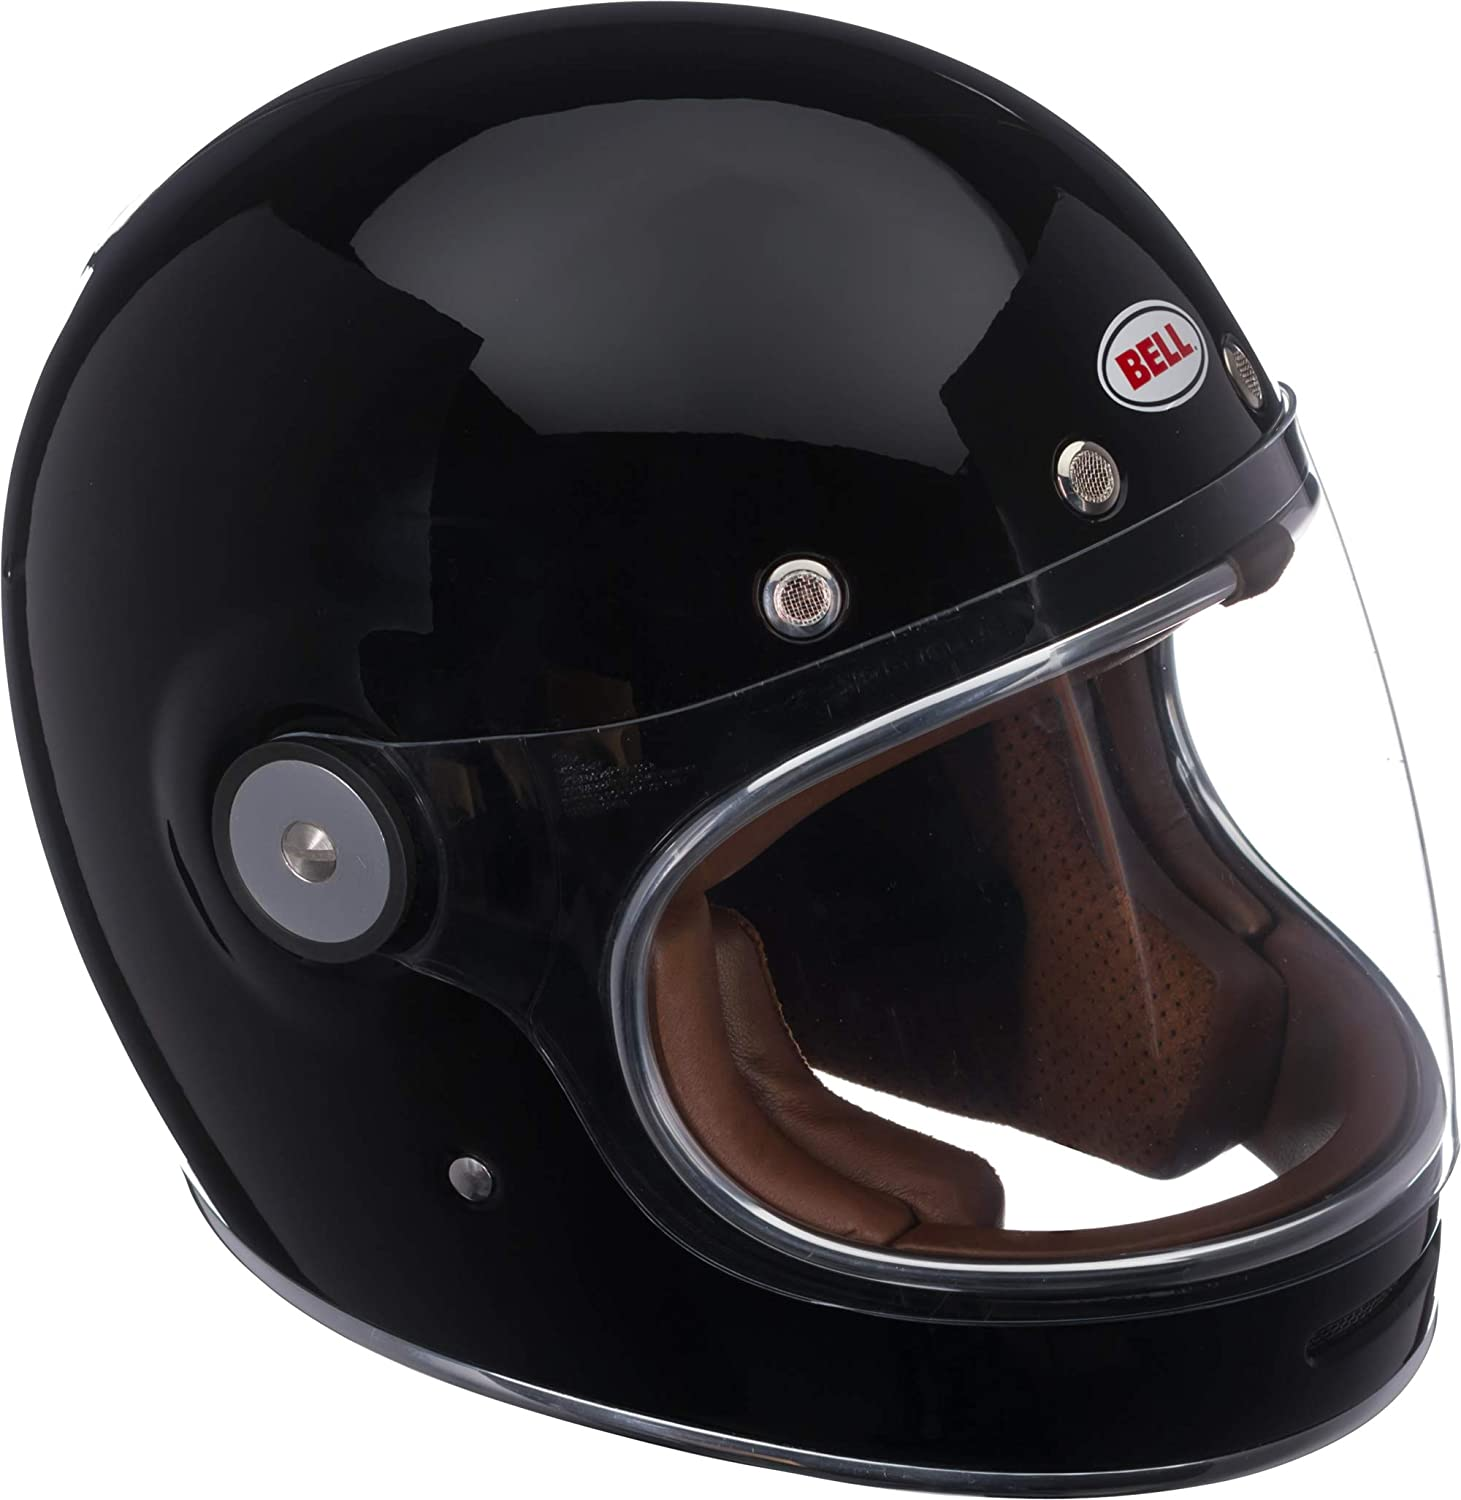 Bell Motorcycle Helmet >> Bell Bullitt Full Face Motorcycle Helmet Solid Gloss Black Large